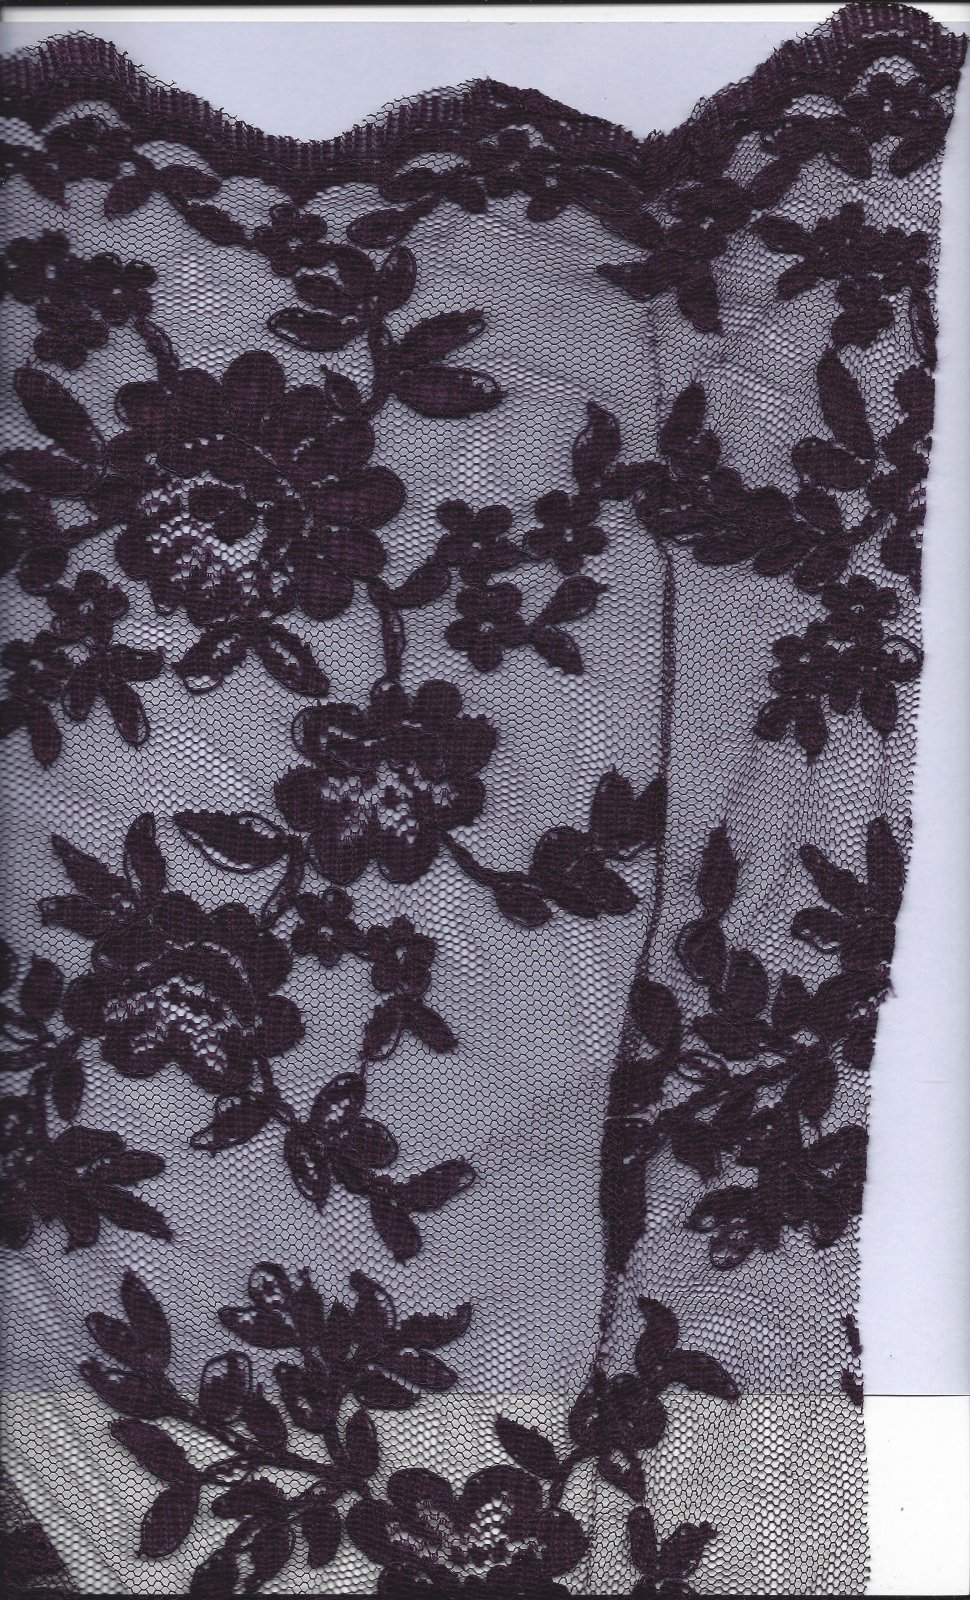 ACC 52446/17 CORDED LACE PLUM